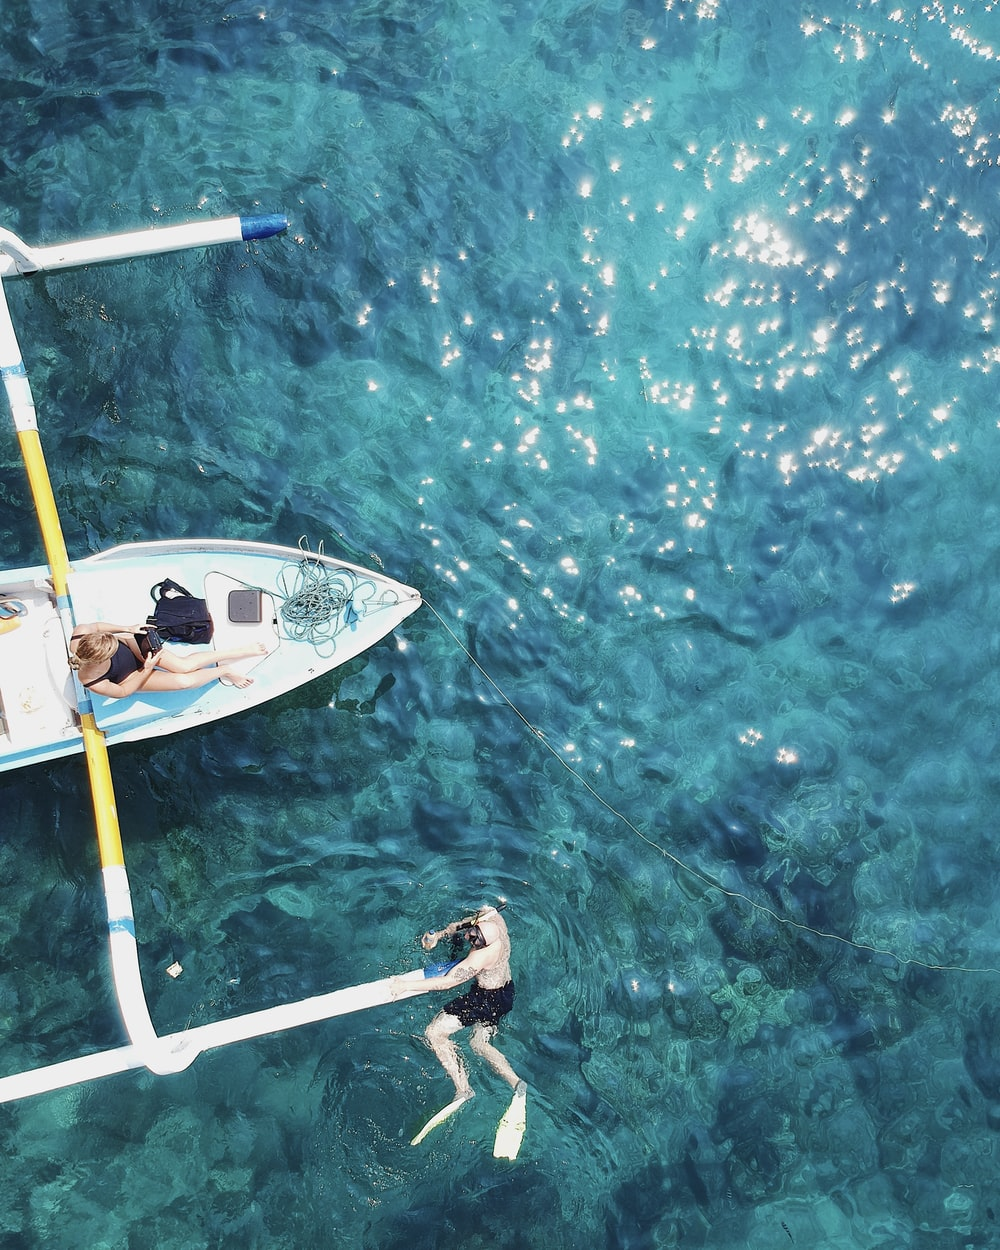 two person in boat top-view photography